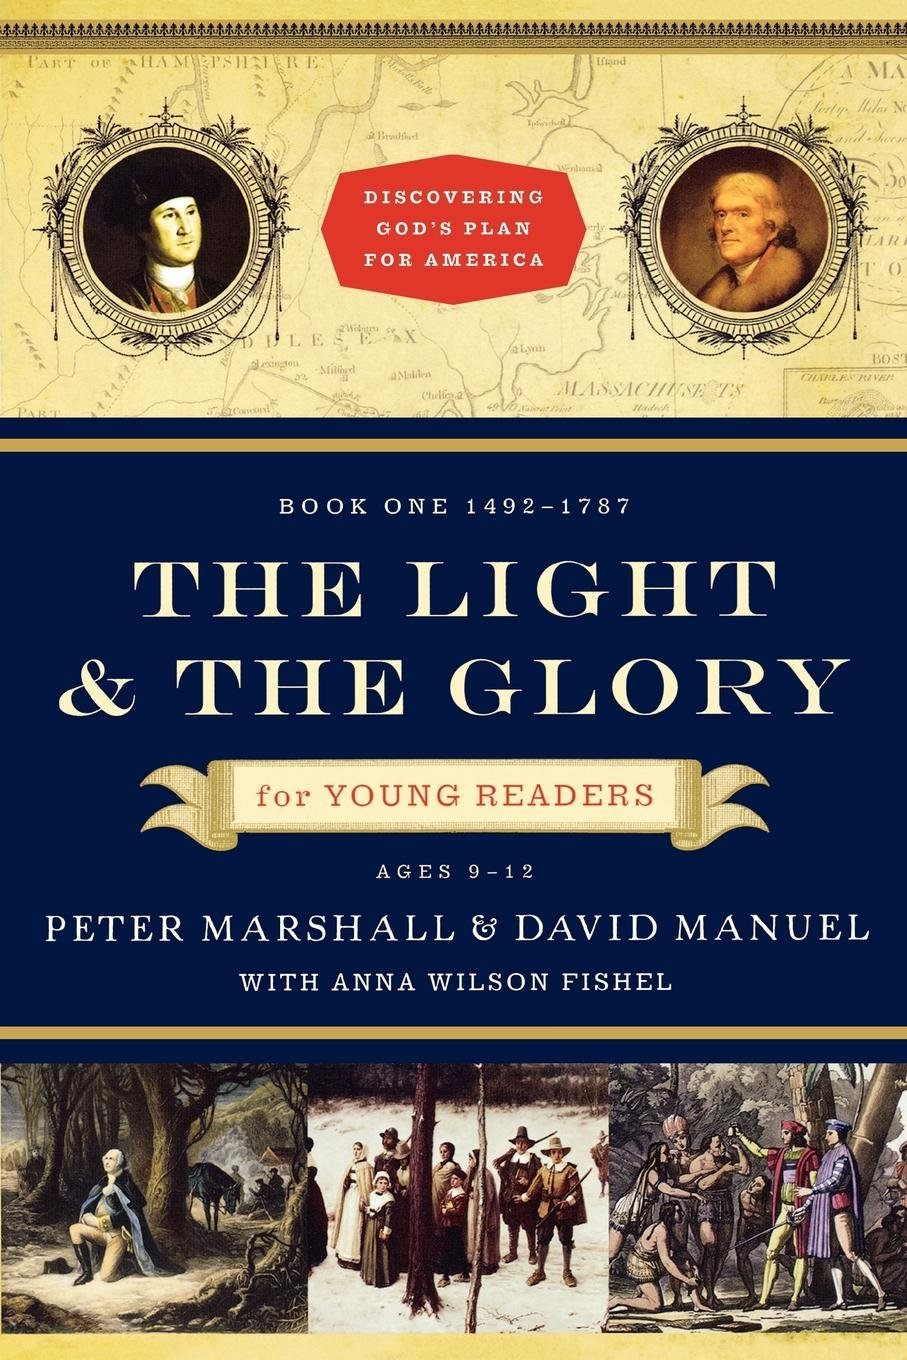 The Light and The Glory for Young Readers Books 1 (1492-1787)by Peter Marshall and David Manuel (New) - Little Green Schoolhouse Books